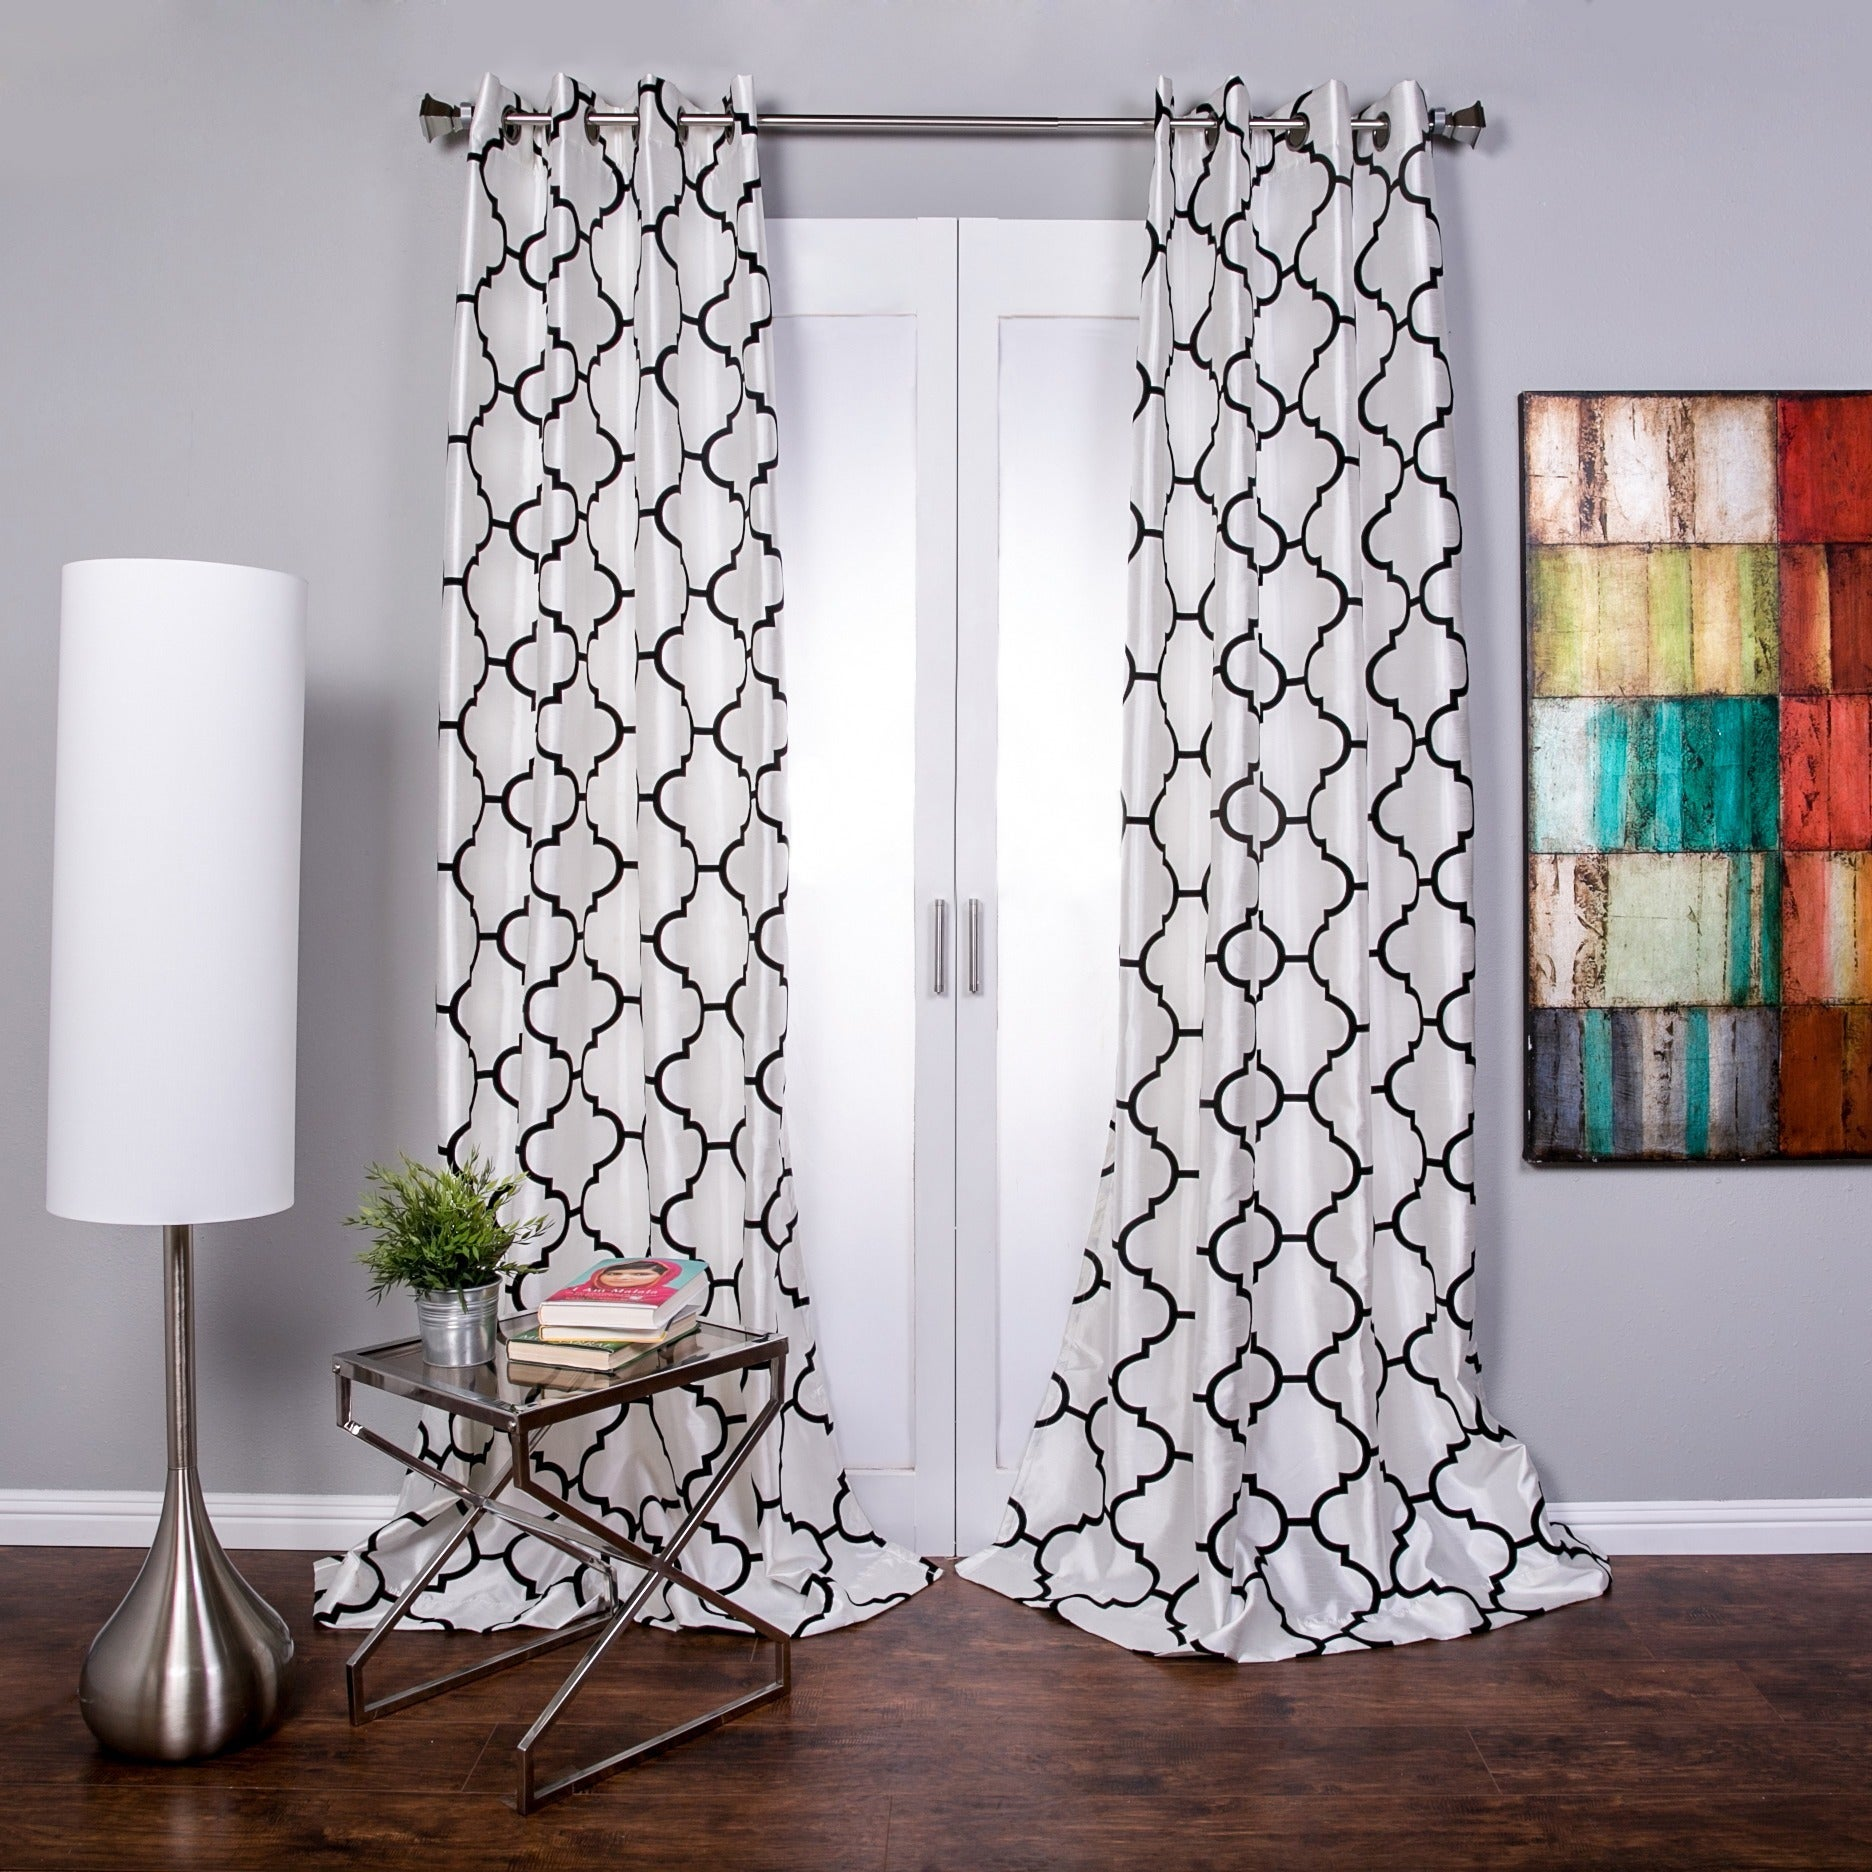 by of china cotton ash curtains amazonsmile in nicole medallion print inch window miller pair pin grey gray set cream drapes colors paisley